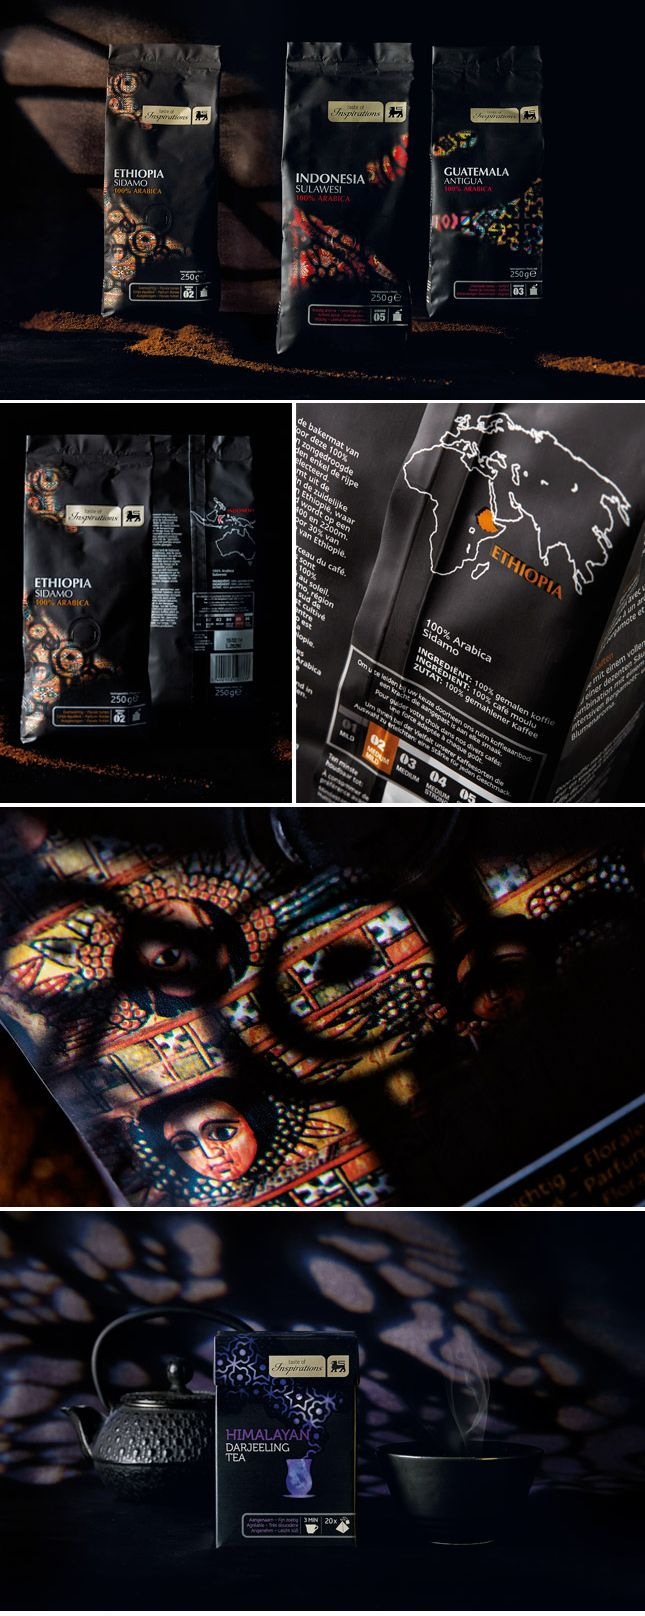 Delhaize, Taste Of Inspirations. A packaging design which reveals the world of real authentic premium coffee. Inspired by colorful patterns created by light shining through stained glass, we created a mystic feeling. With this visual idea we created an atmospheric aroma by combining ethnicity and mysticity. www.quatremains.be